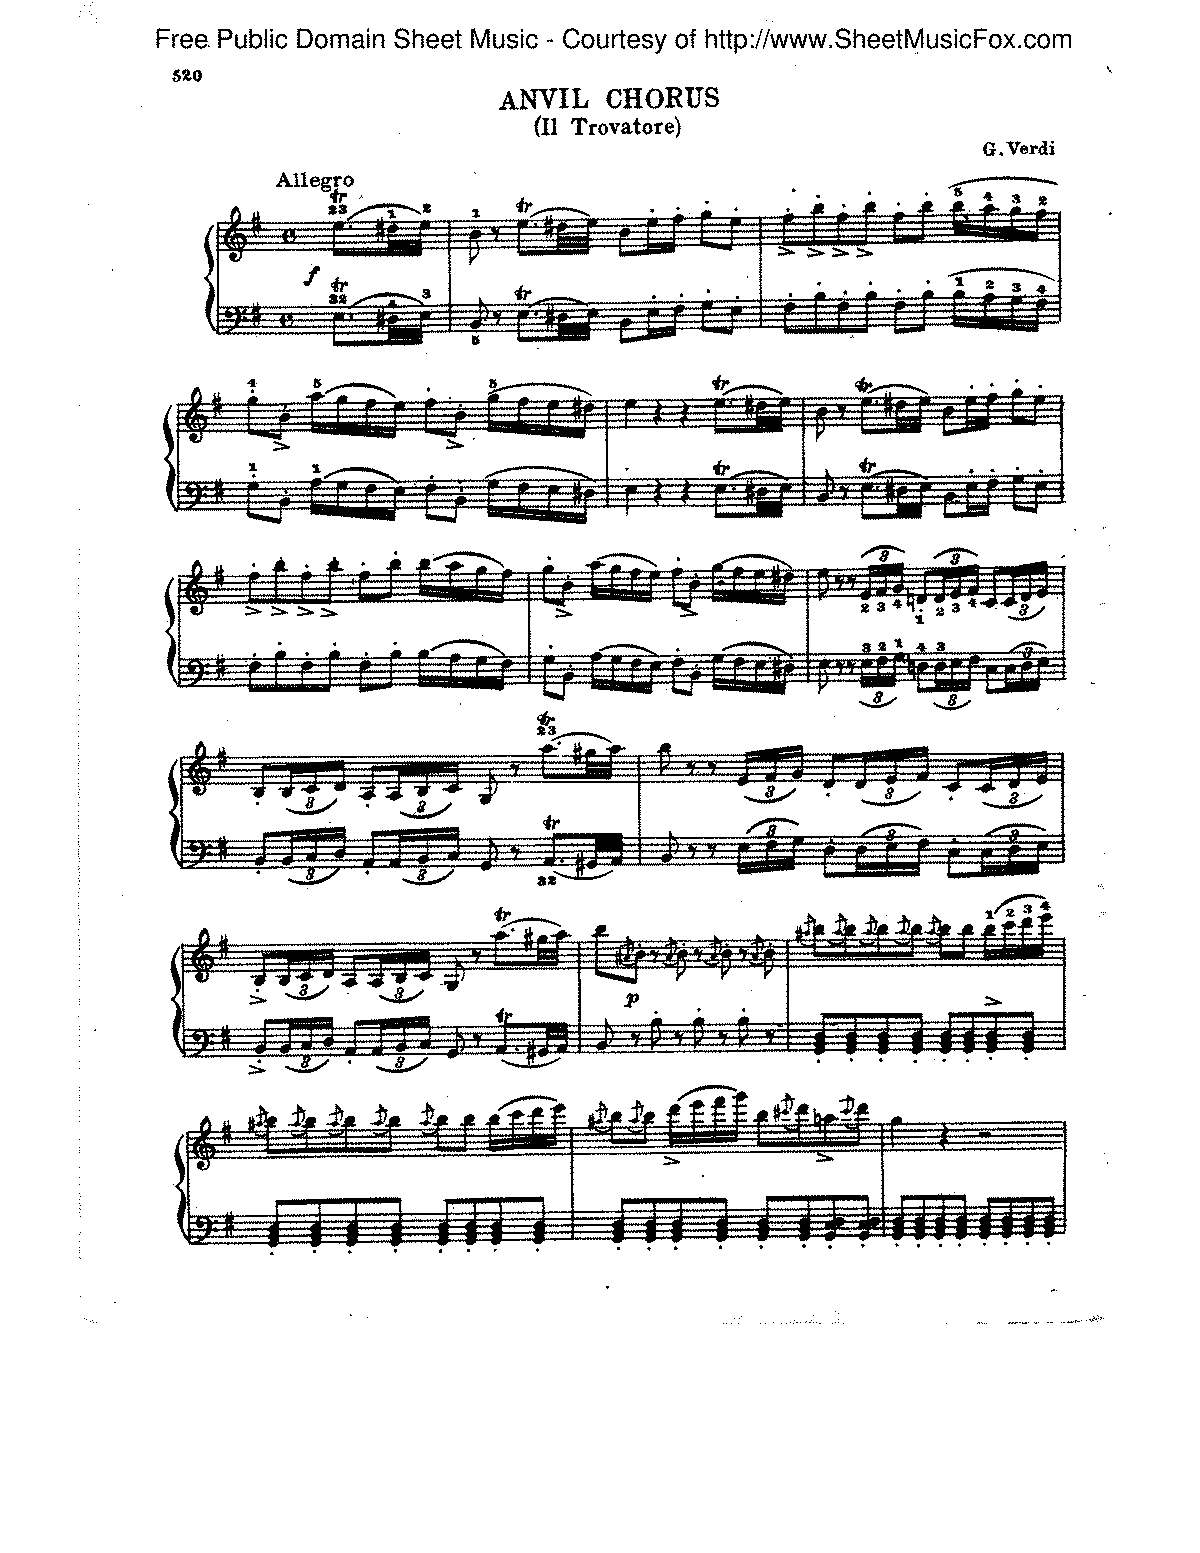 Verdi - Anvil Chorus from Il Travatore.pdf